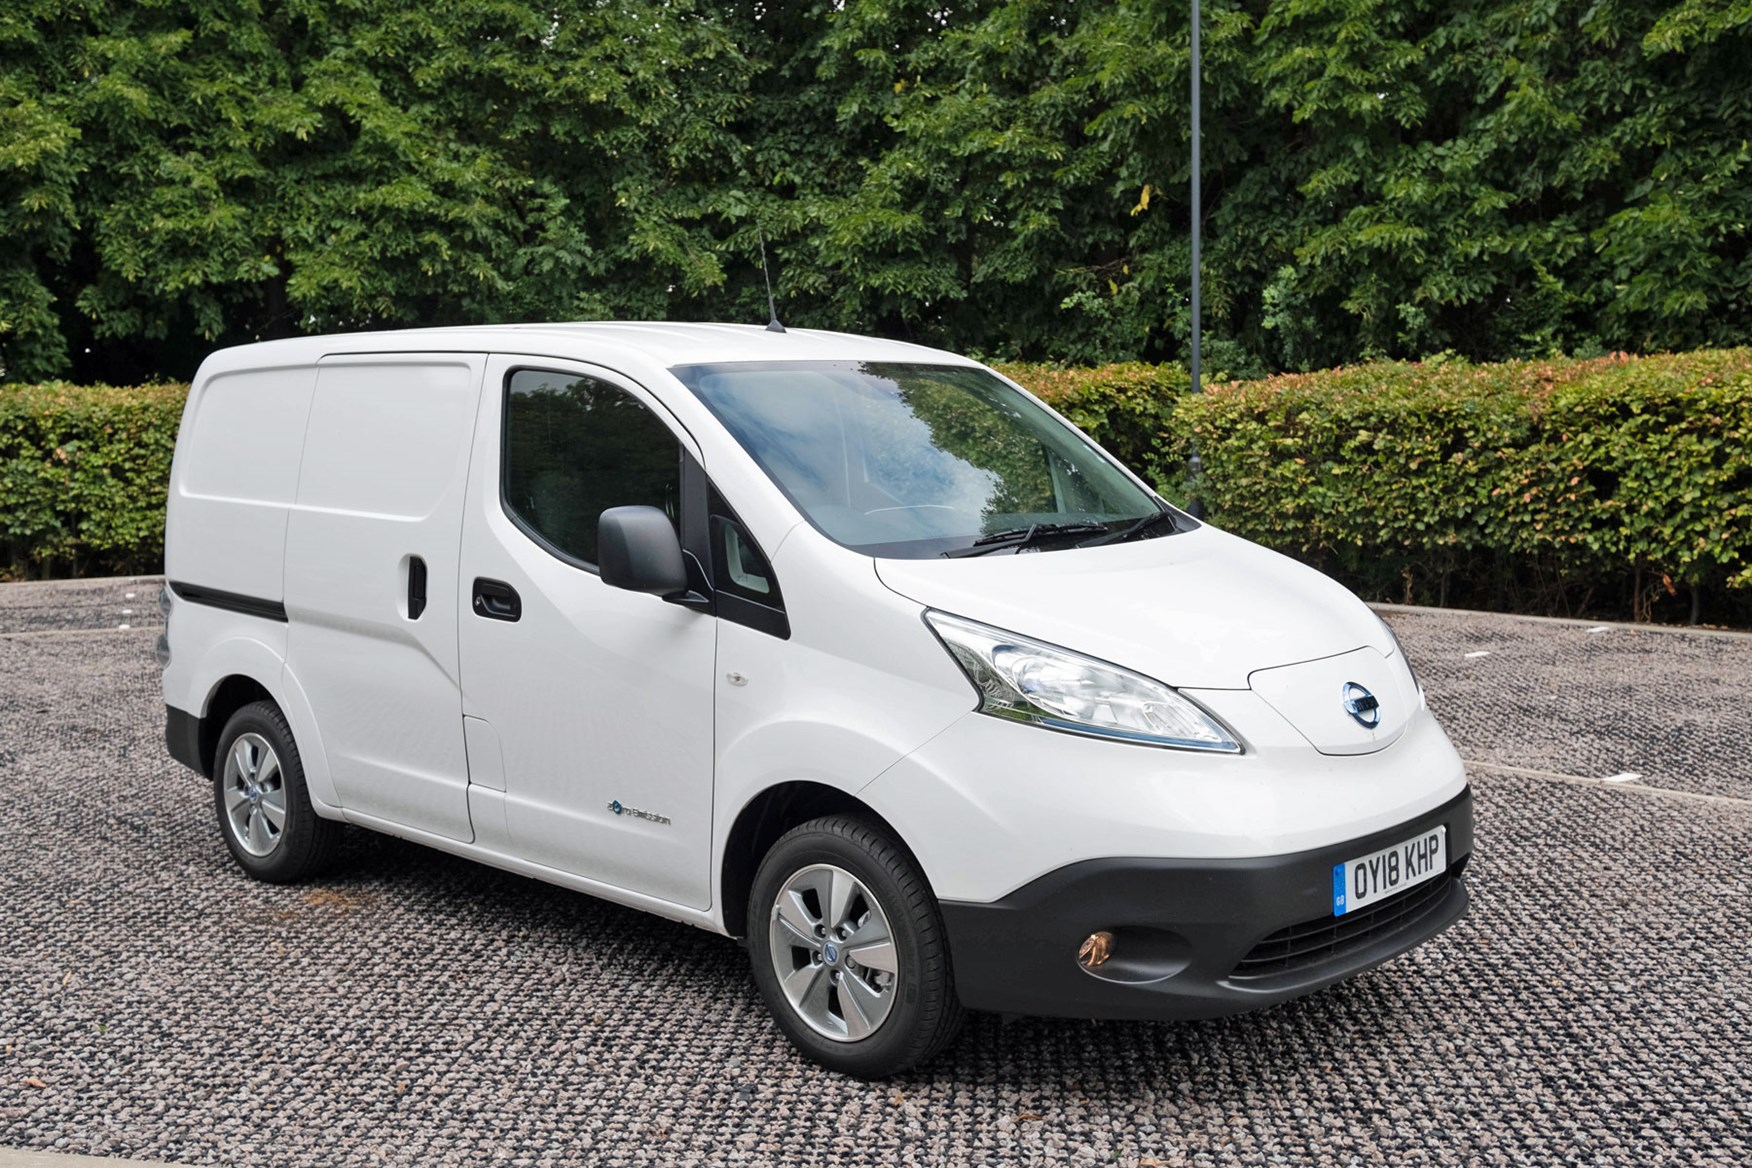 Nissan e-NV200 2018 electric van review - 60% more driving range